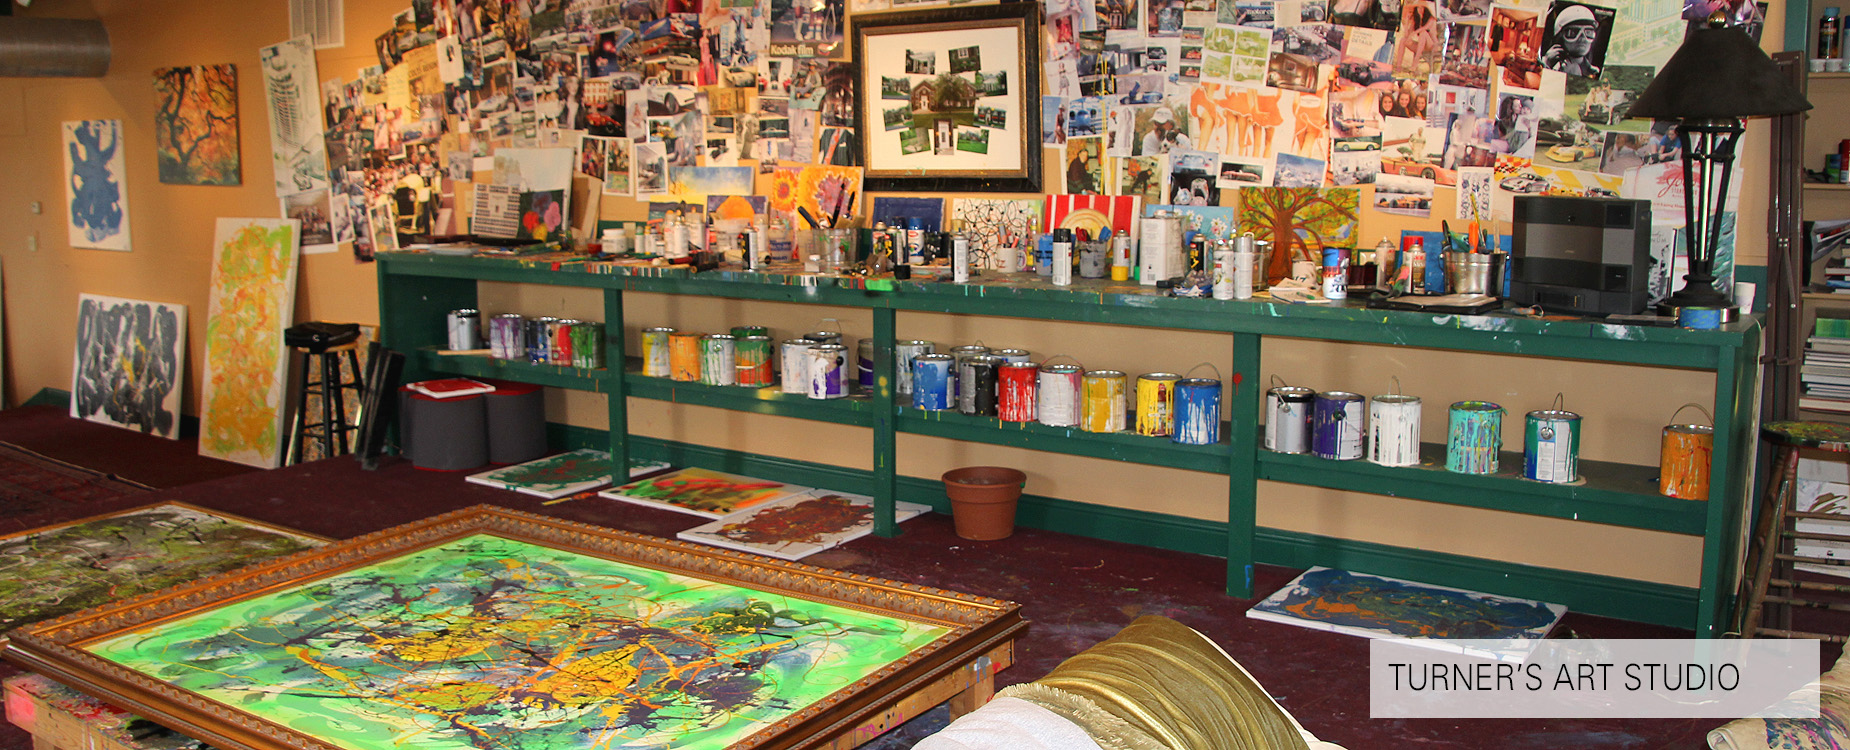 Turner Woodard's Art Studio